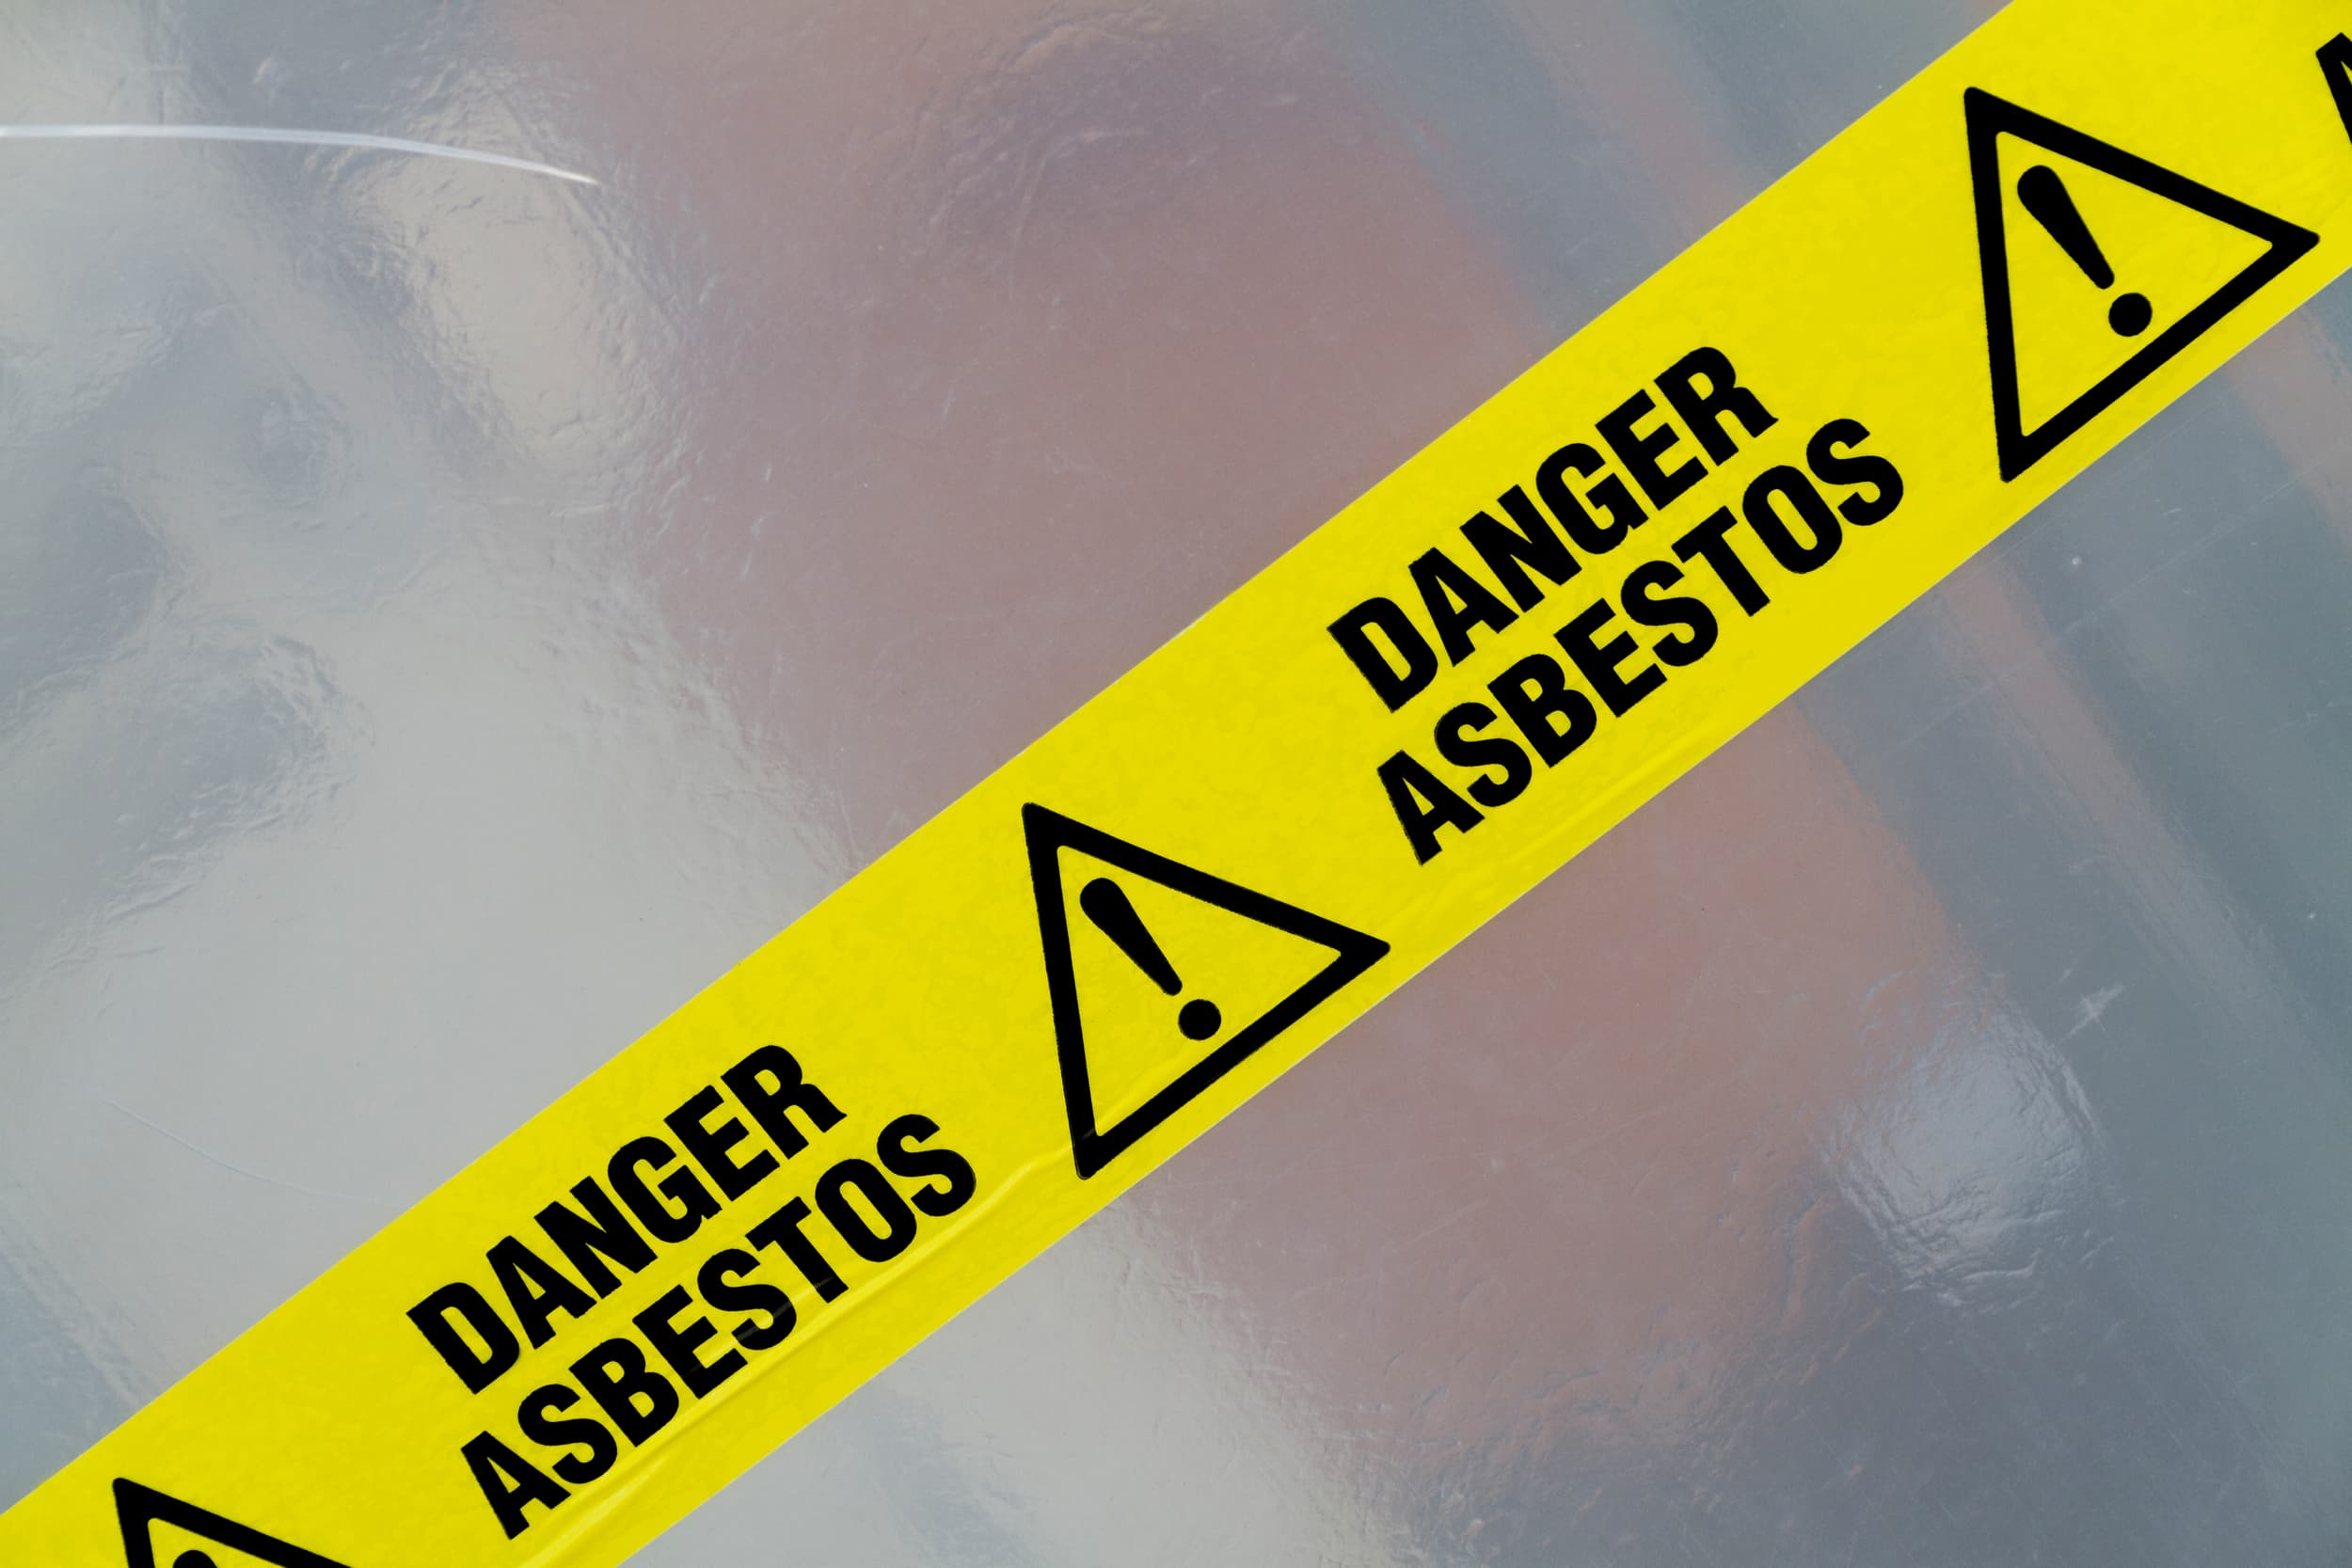 Compliance Training Online Construction Asbestos Safety course